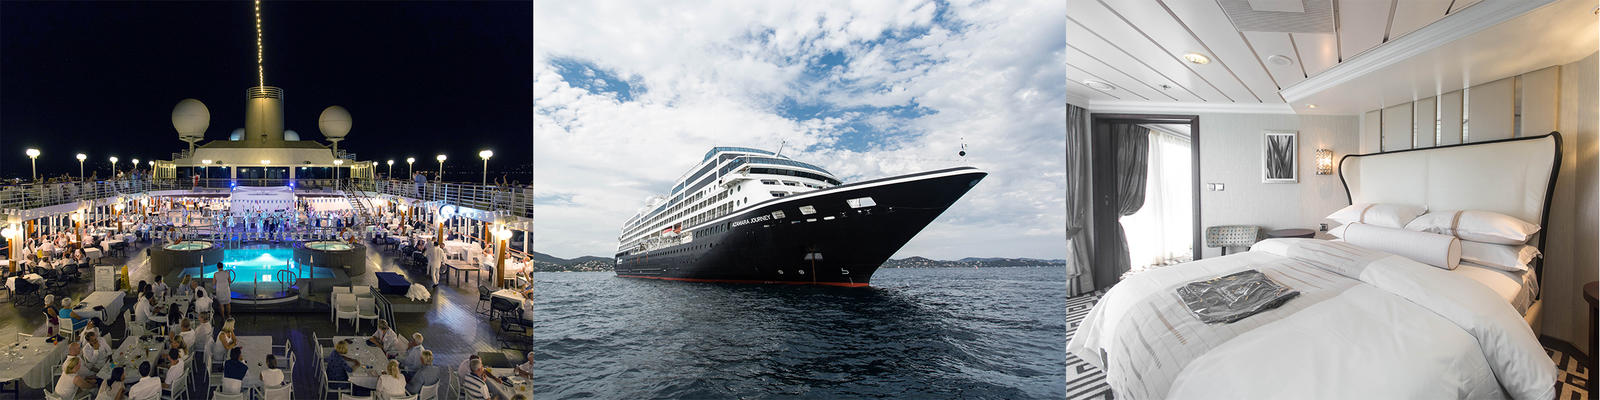 Azamara Cruises 2019: Reviews, Photos & Activities - Cruise Critic